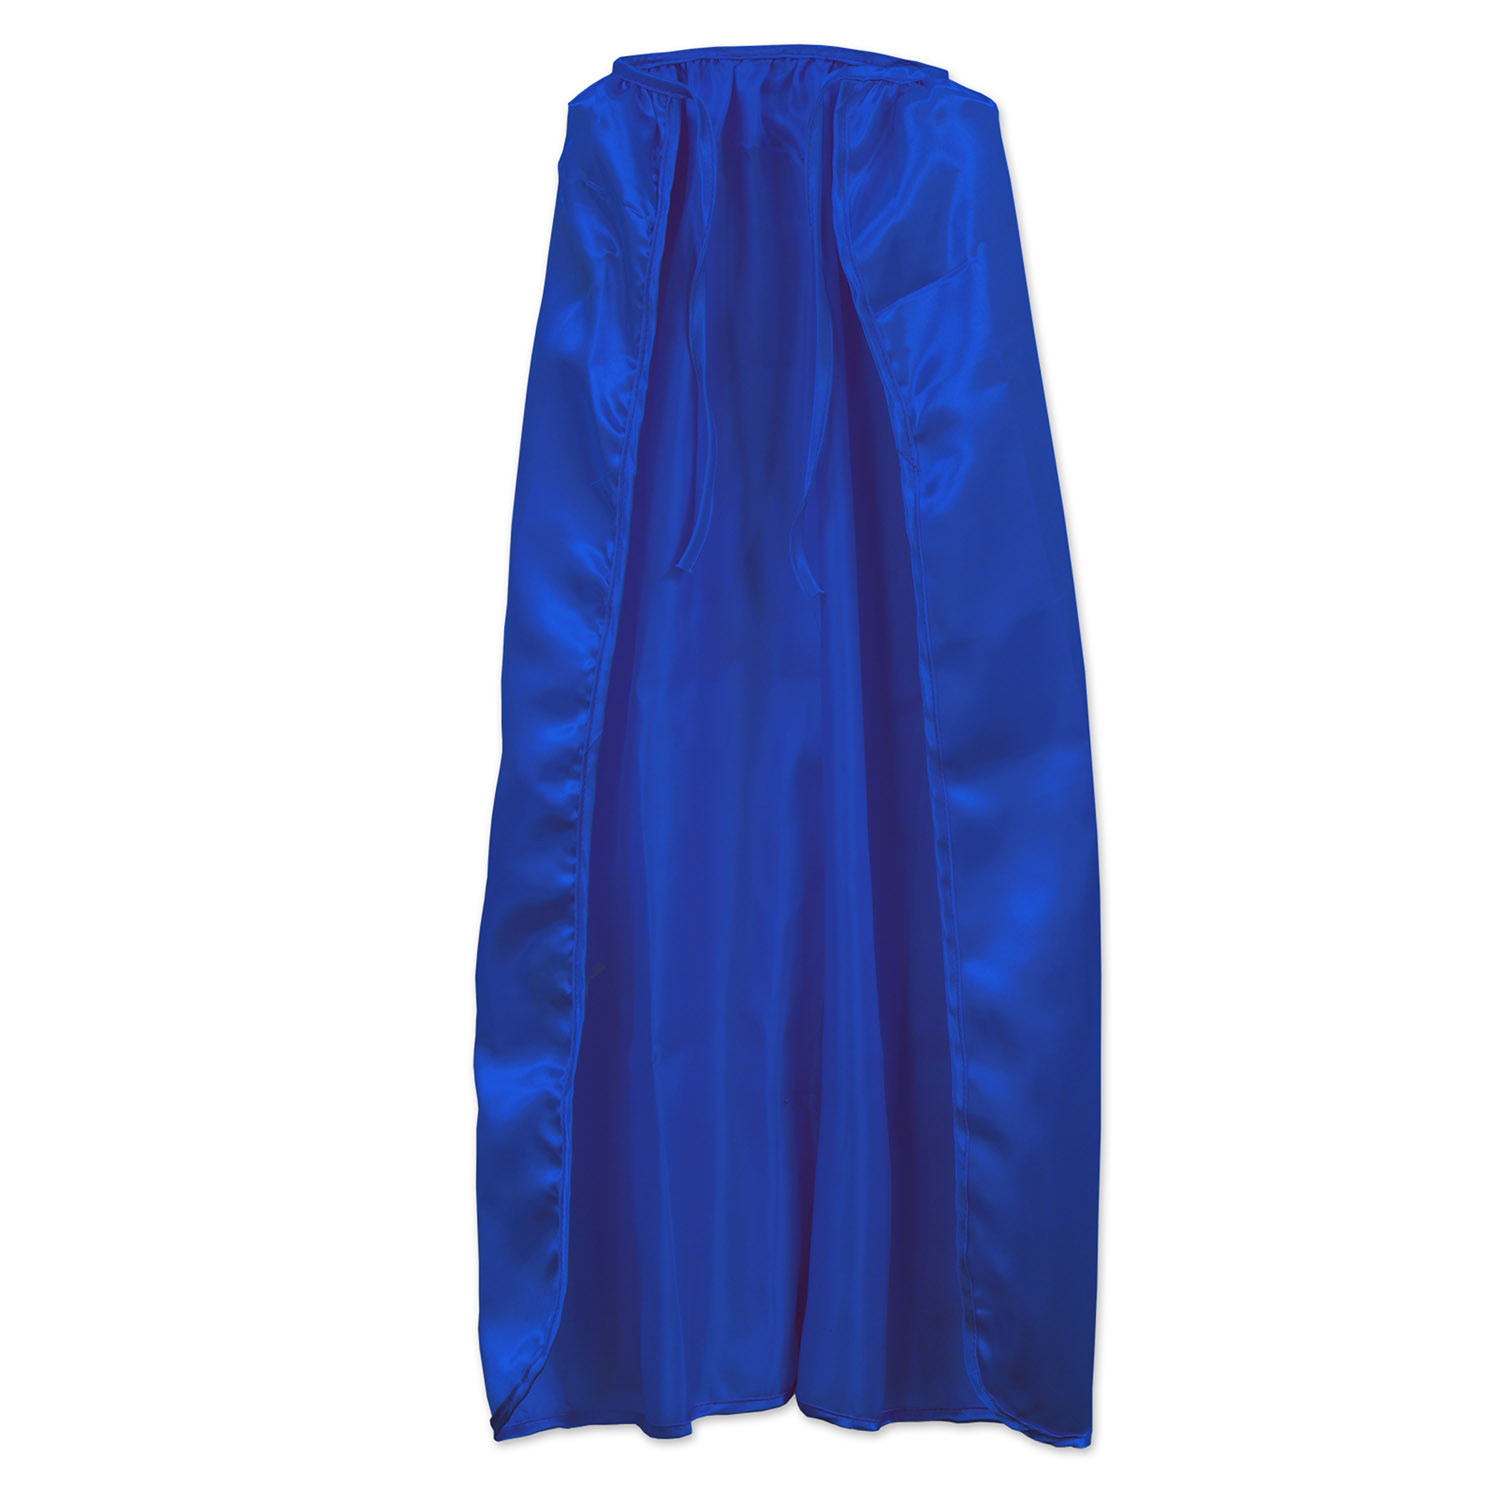 Blue Fabric Capes (Pack of 12) Blue Fabric Capes, team colors, sports, party favor, wholesale, inexpensive, bulk